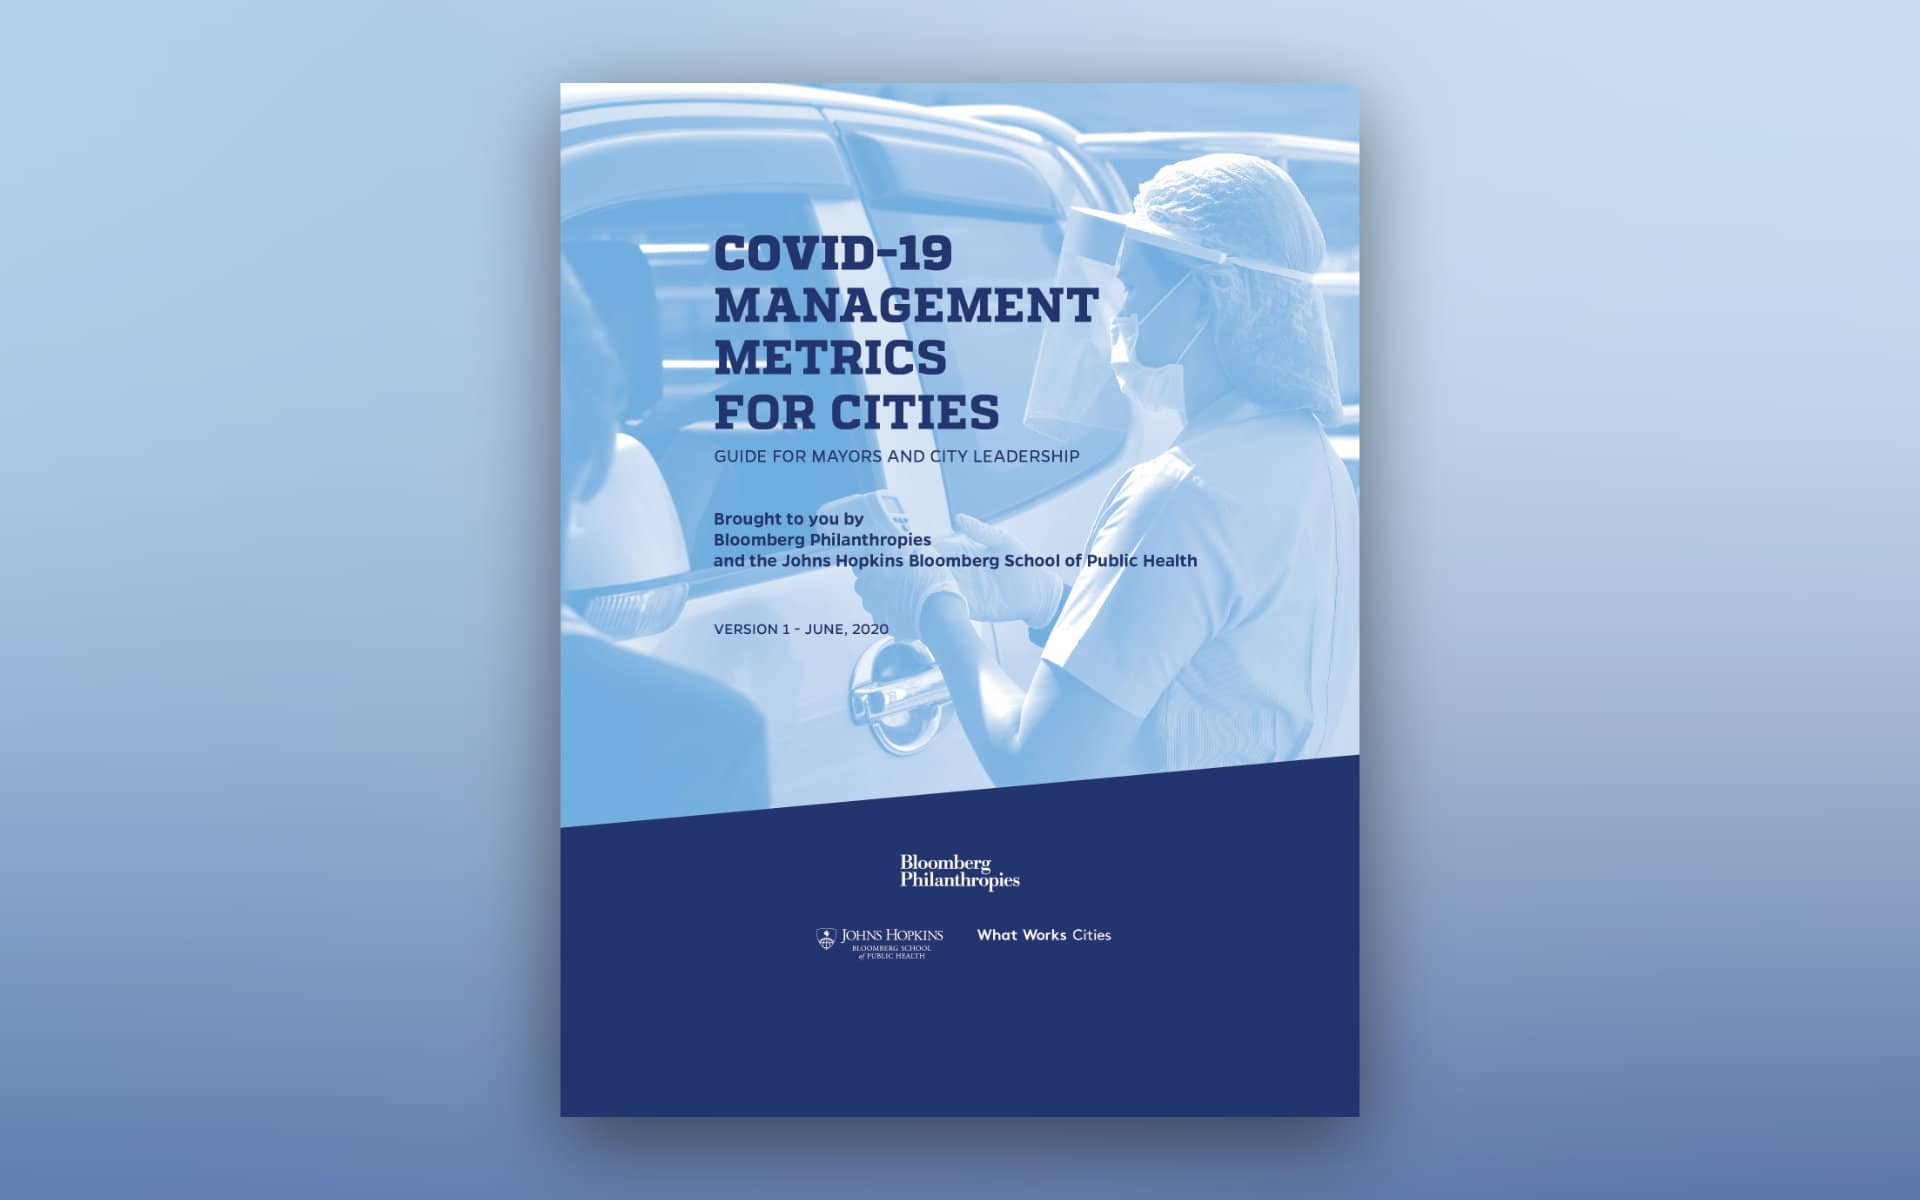 covid-19 management for cities